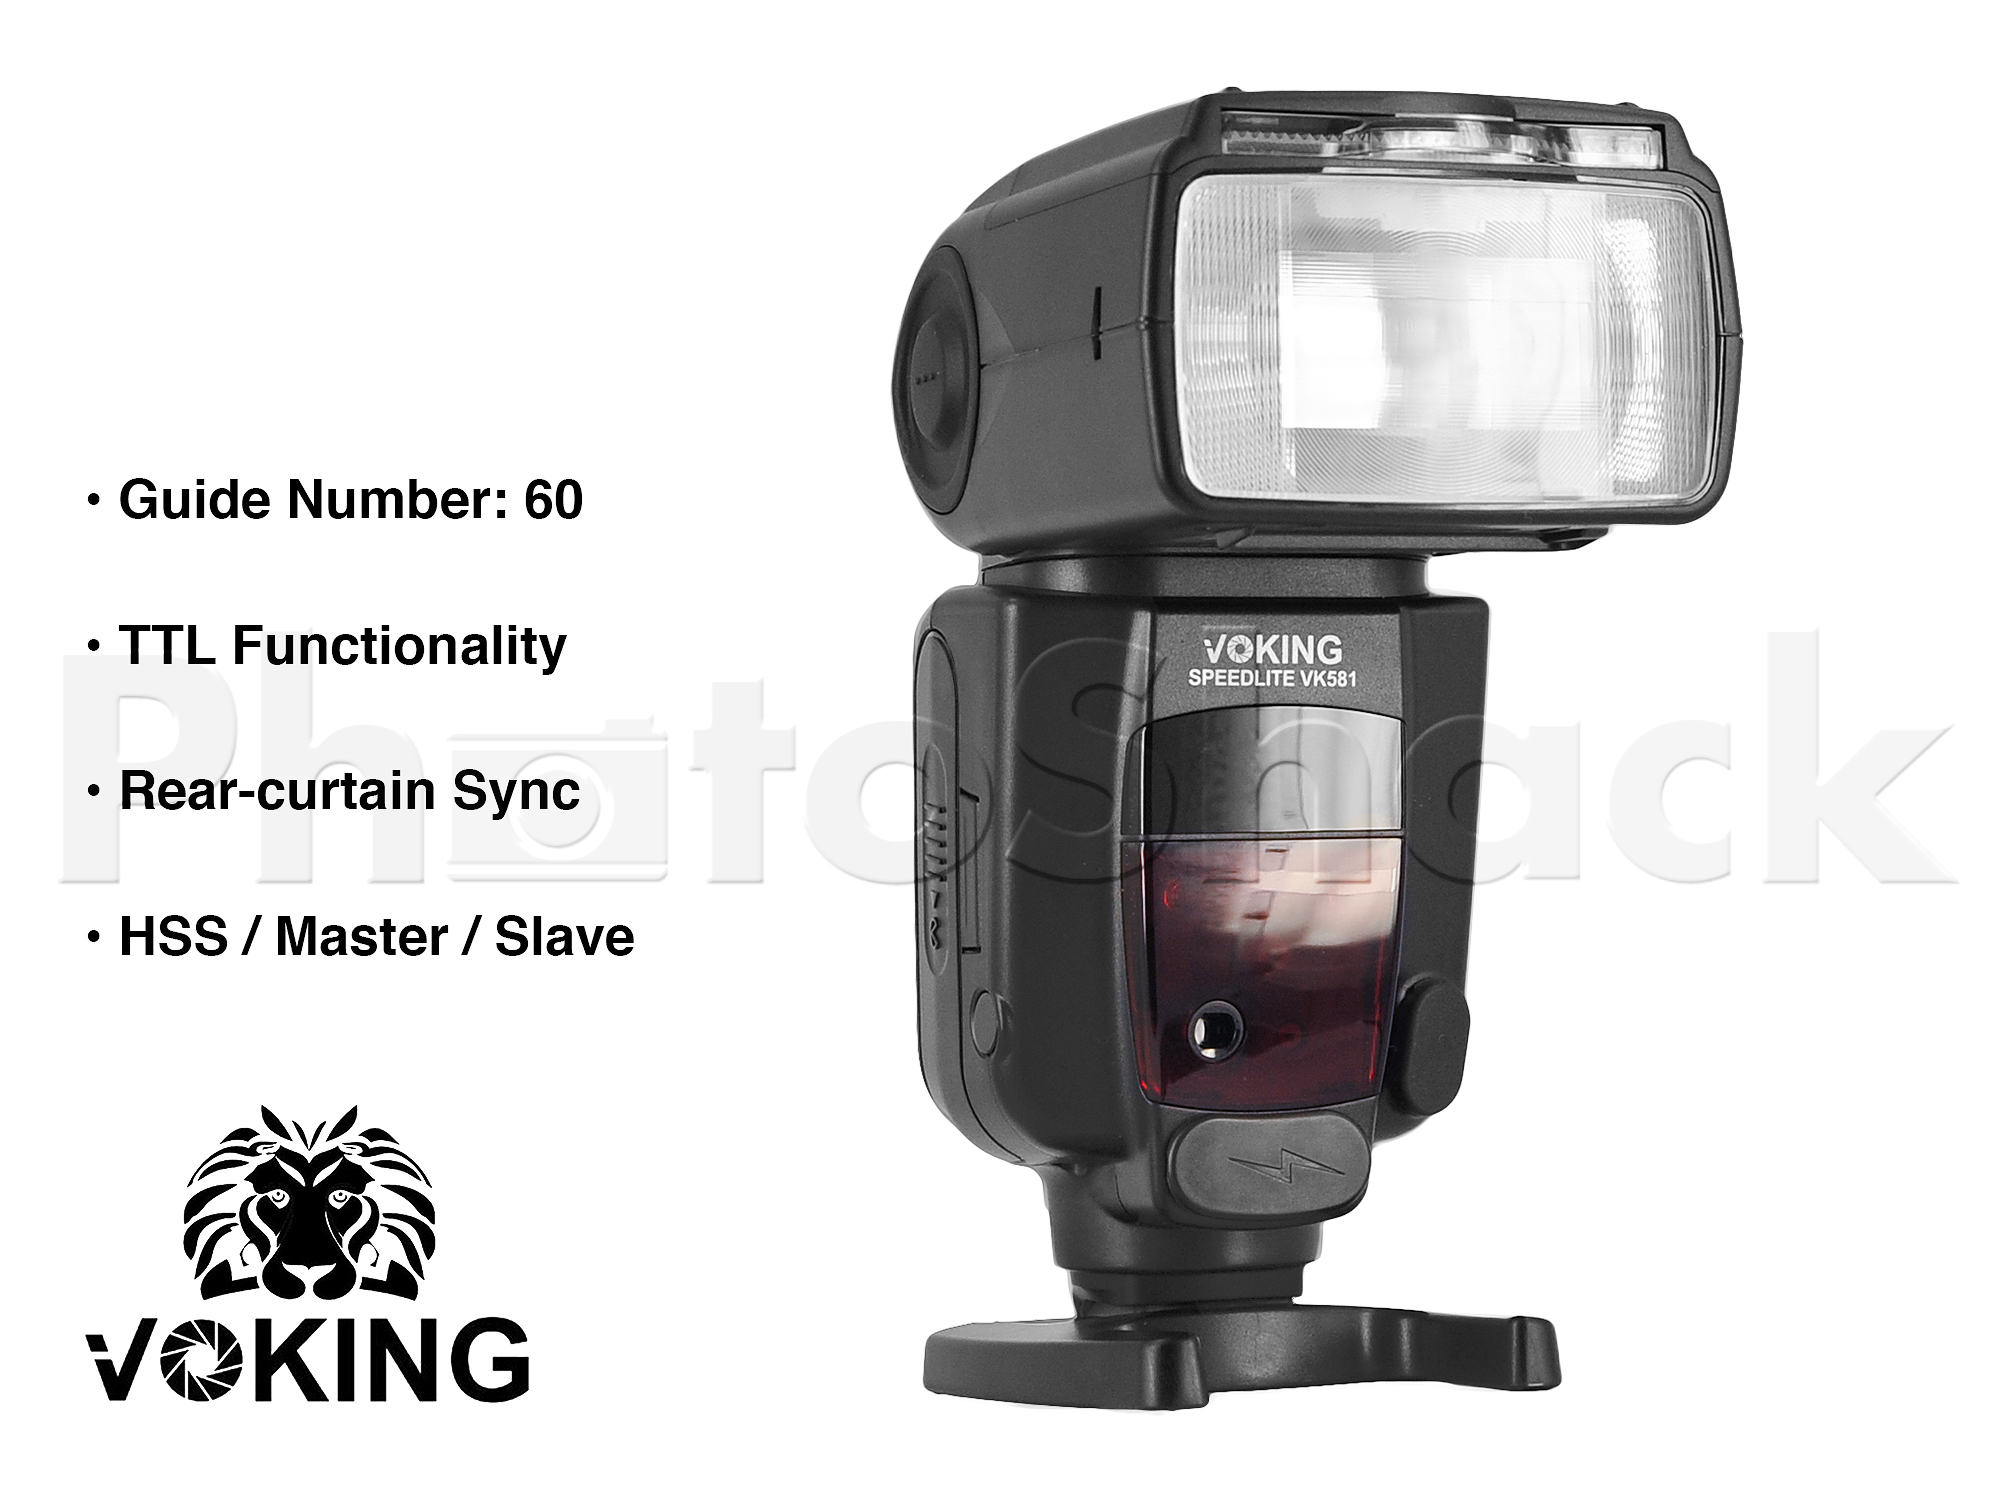 Voking Speedlite for Nikon - VK581N